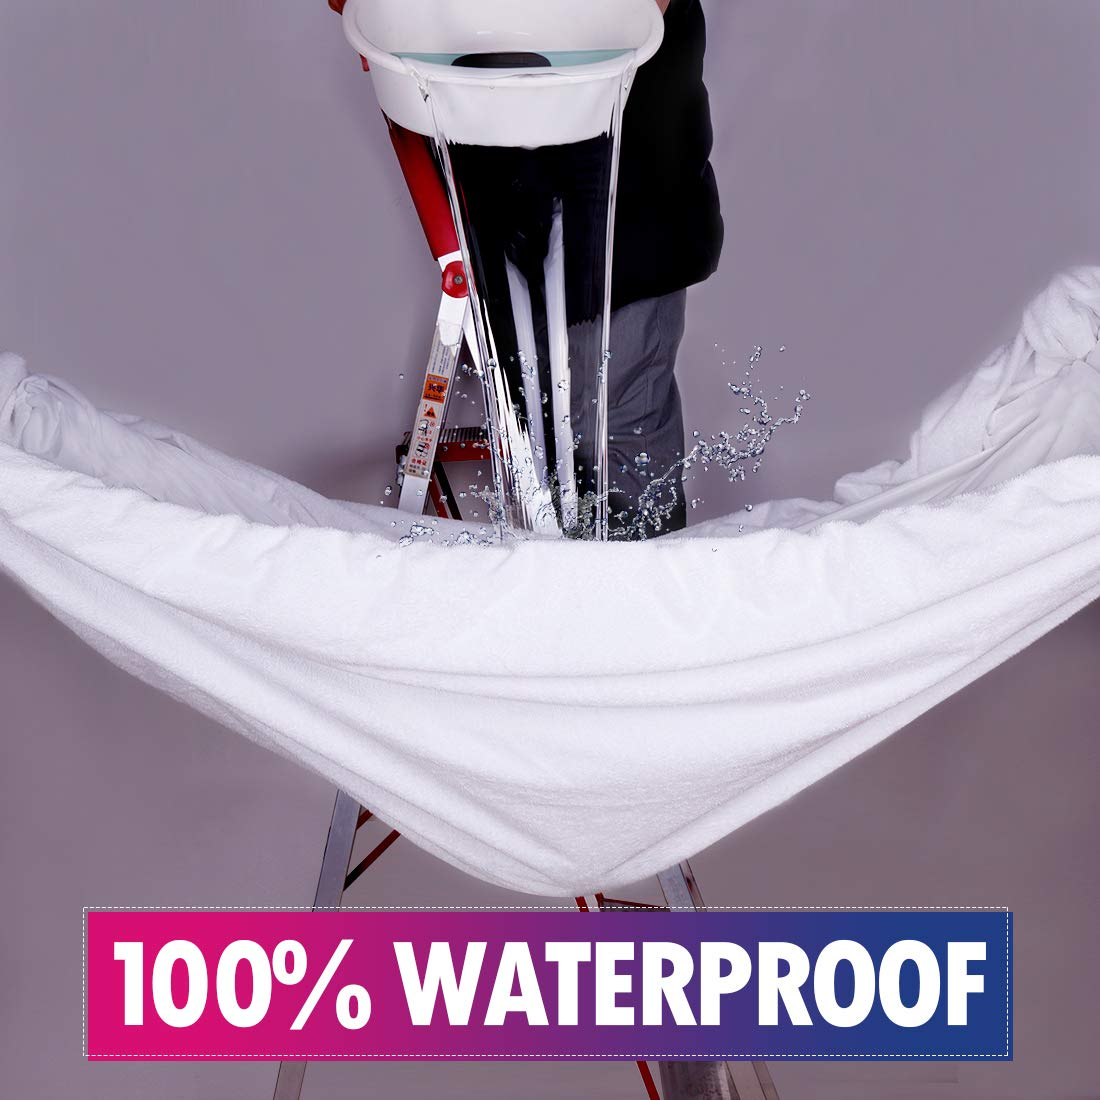 CottonHouse 100/% Waterproof Mattress Cover Protectors Twin Size Mattress Pad Hypoallergenic//Dust Proof 8-21 Deep Pocket Soft Breathable Noiseless